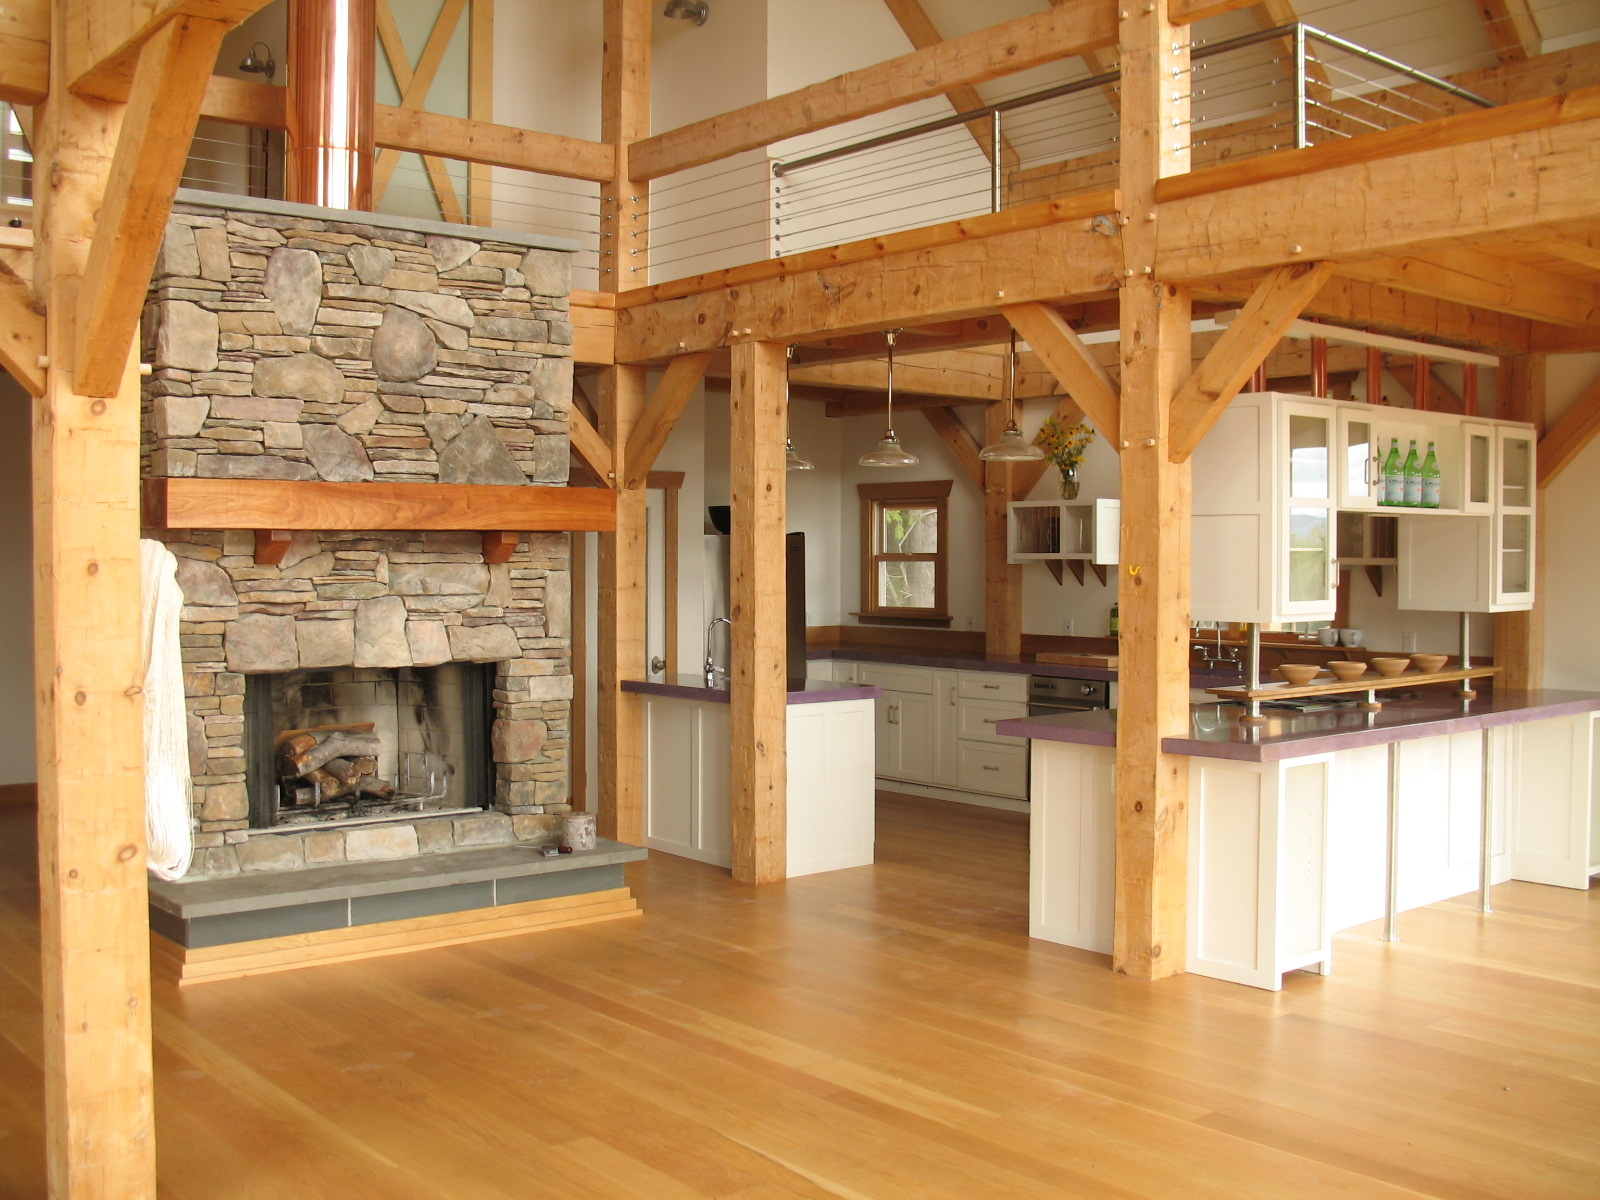 Magnificent Timber Frame Home Fireplace 1600 x 1200 · 536 kB · jpeg